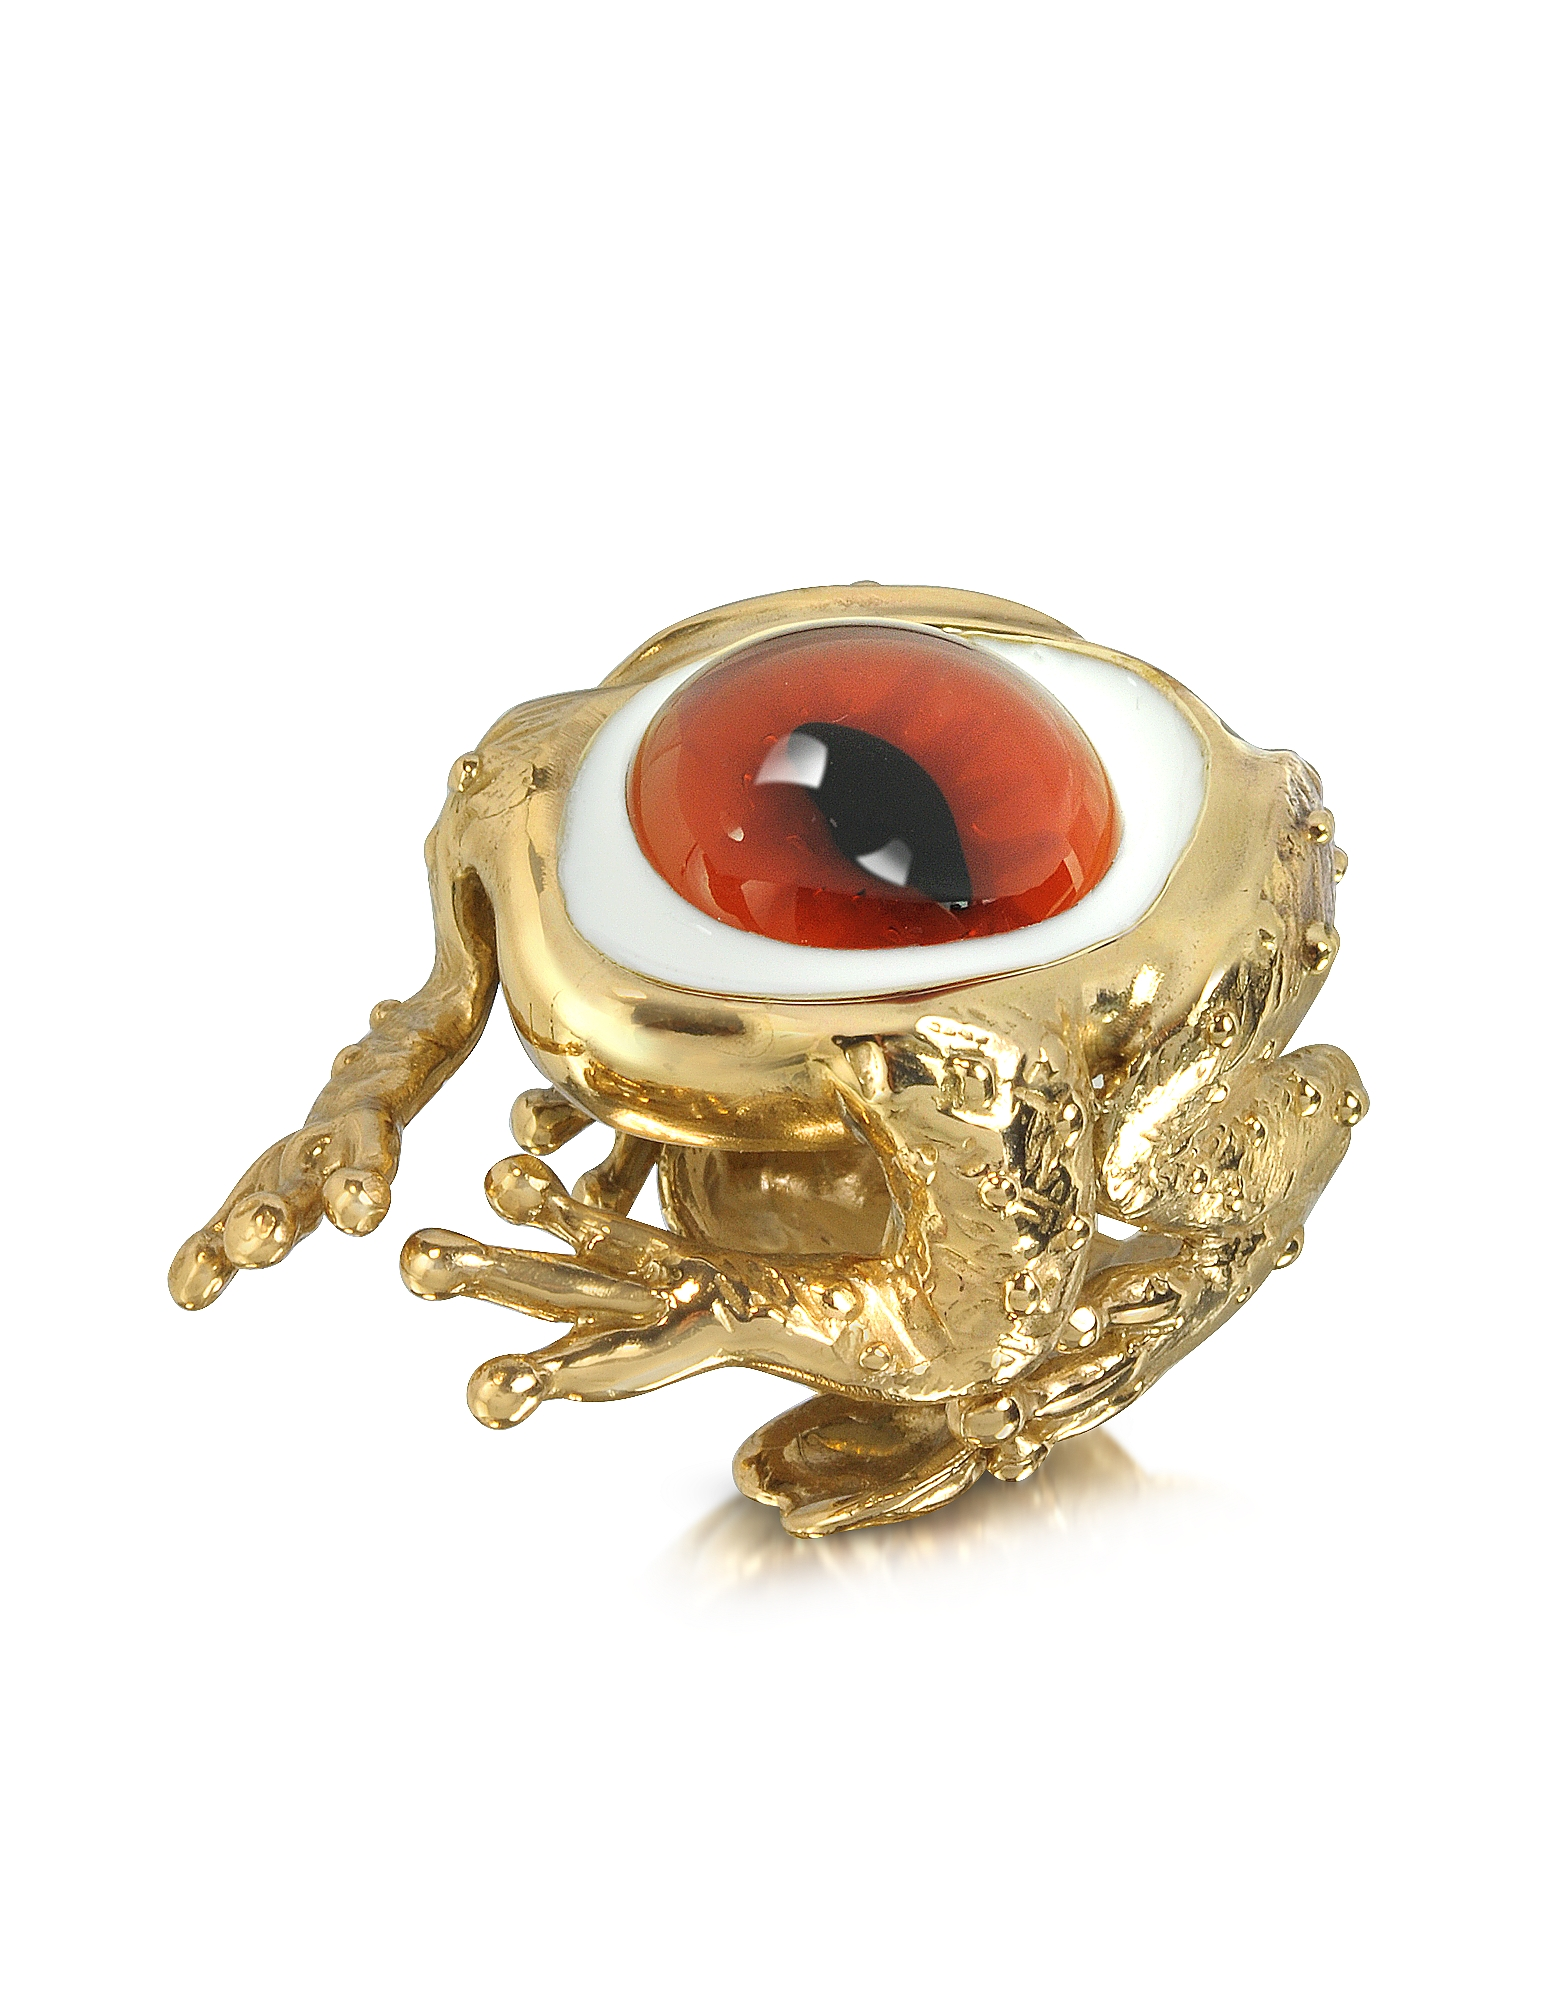 Bernard Delettrez Rings, Bronze Frog Ring With Eye